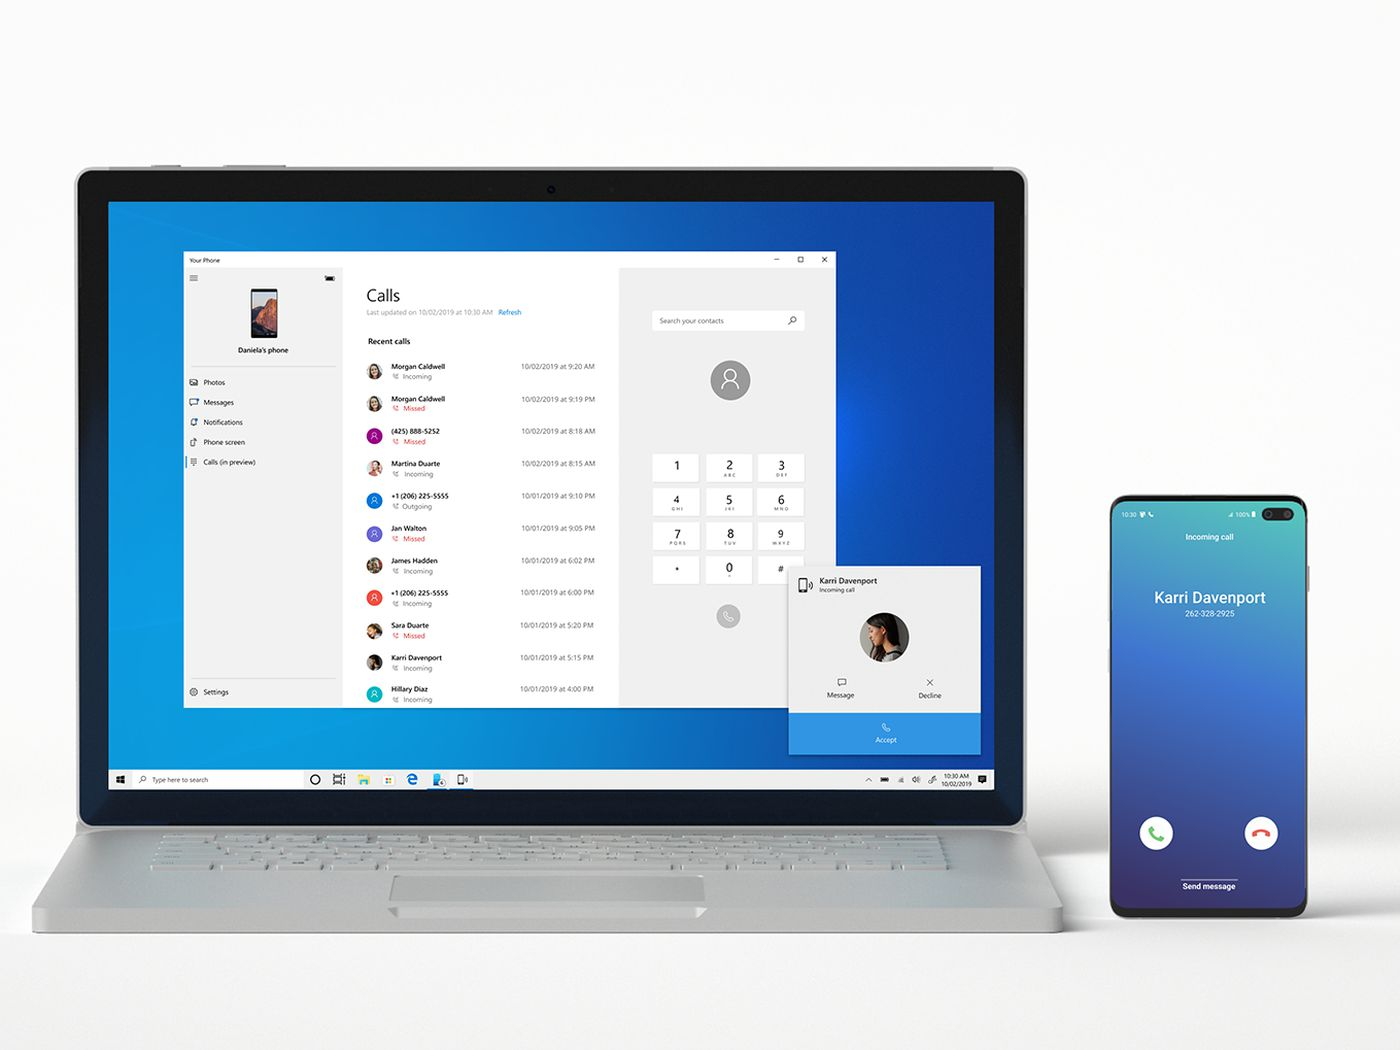 How To Make And Receive Calls On Your Pc With The Your Phone App The Verge